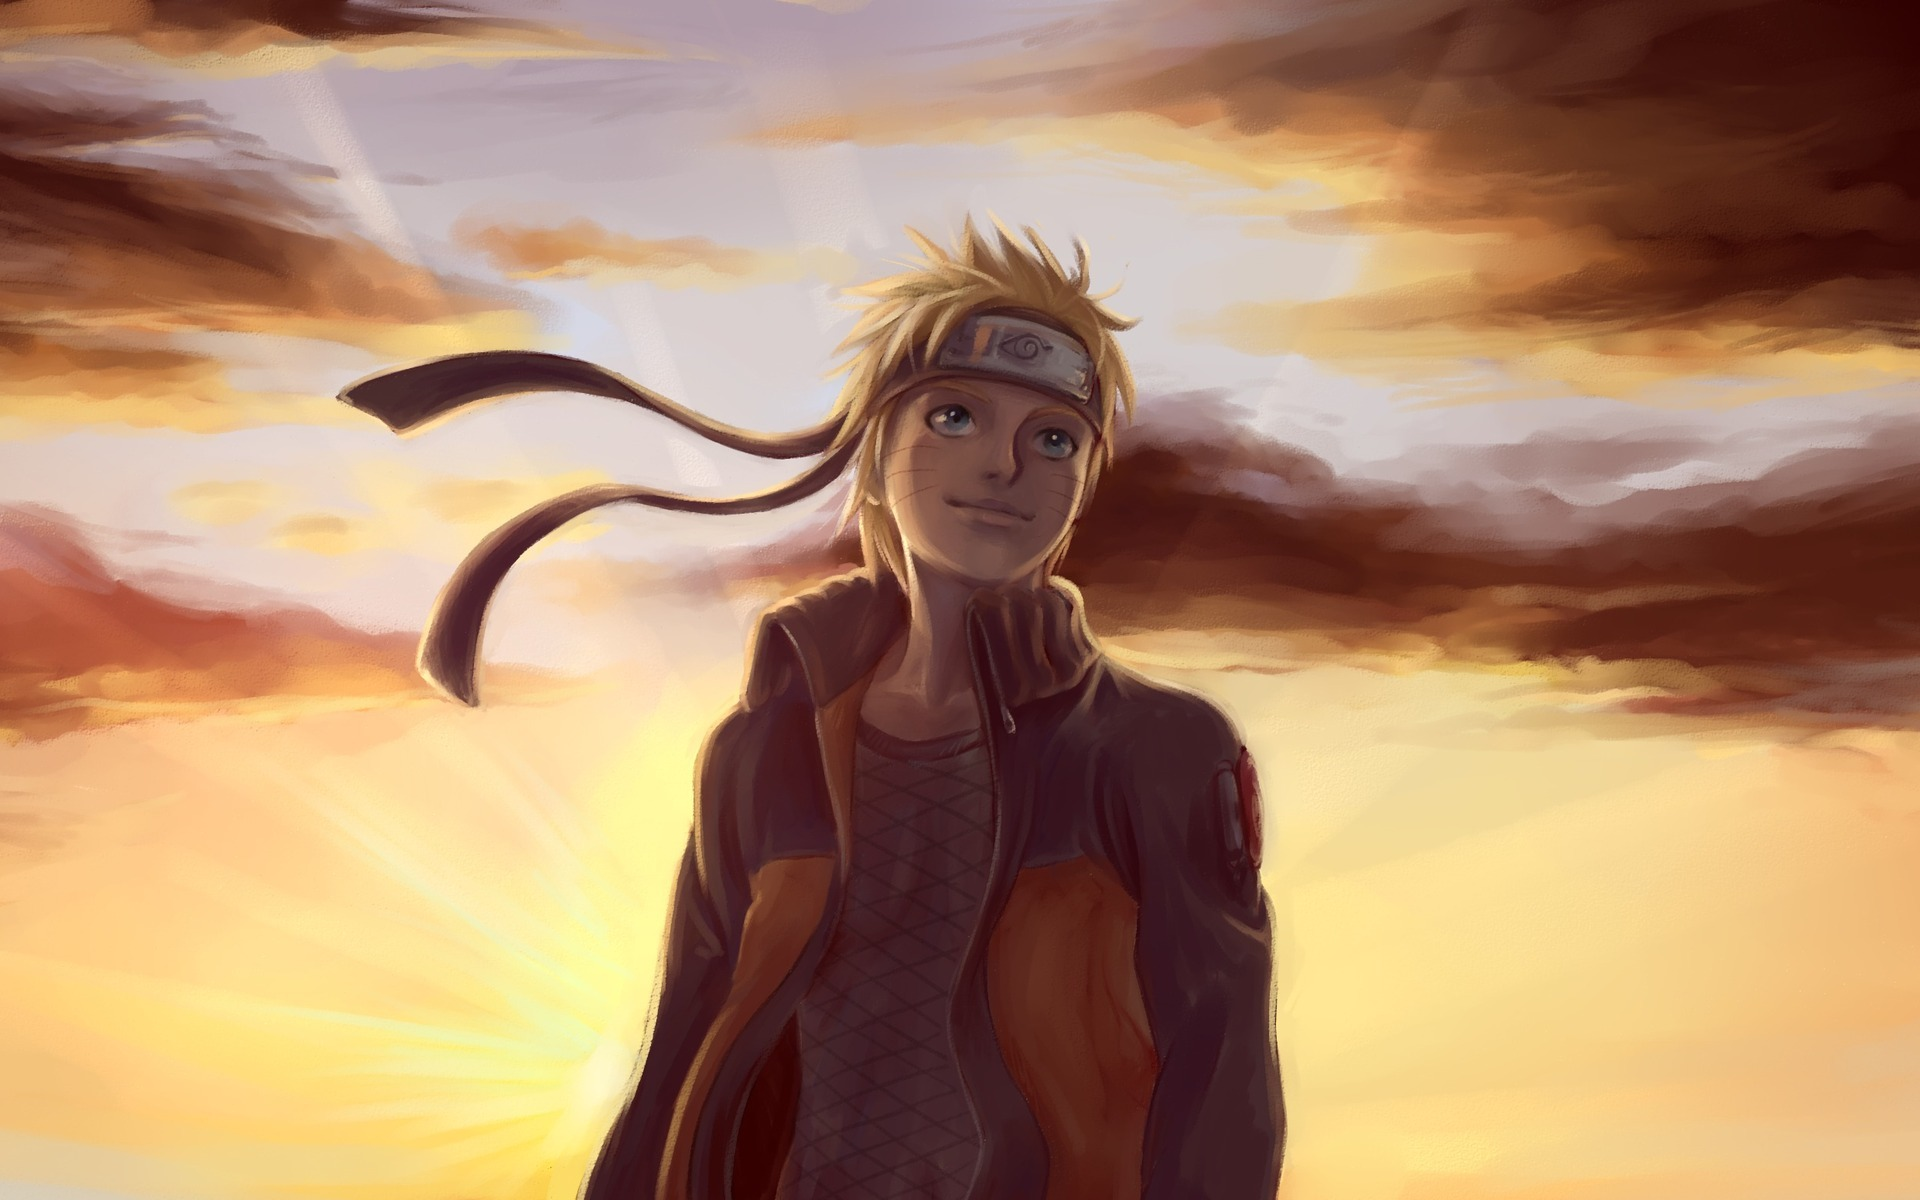 29650 download wallpaper Naruto, Anime, Men screensavers and pictures for free